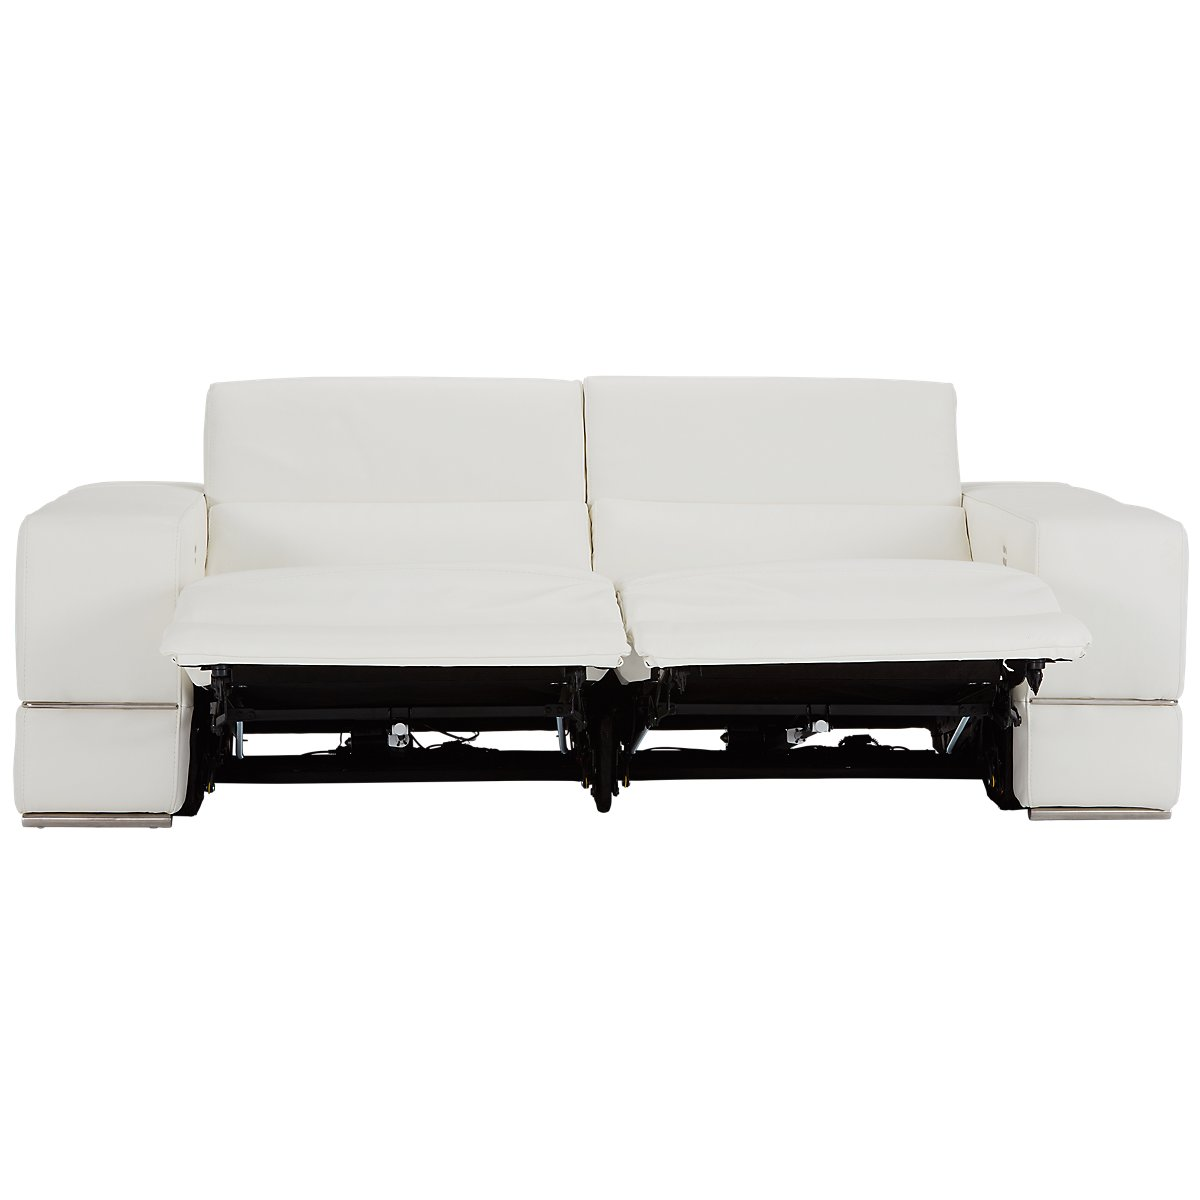 City Furniture: Dante White Leather Power Reclining Living Room